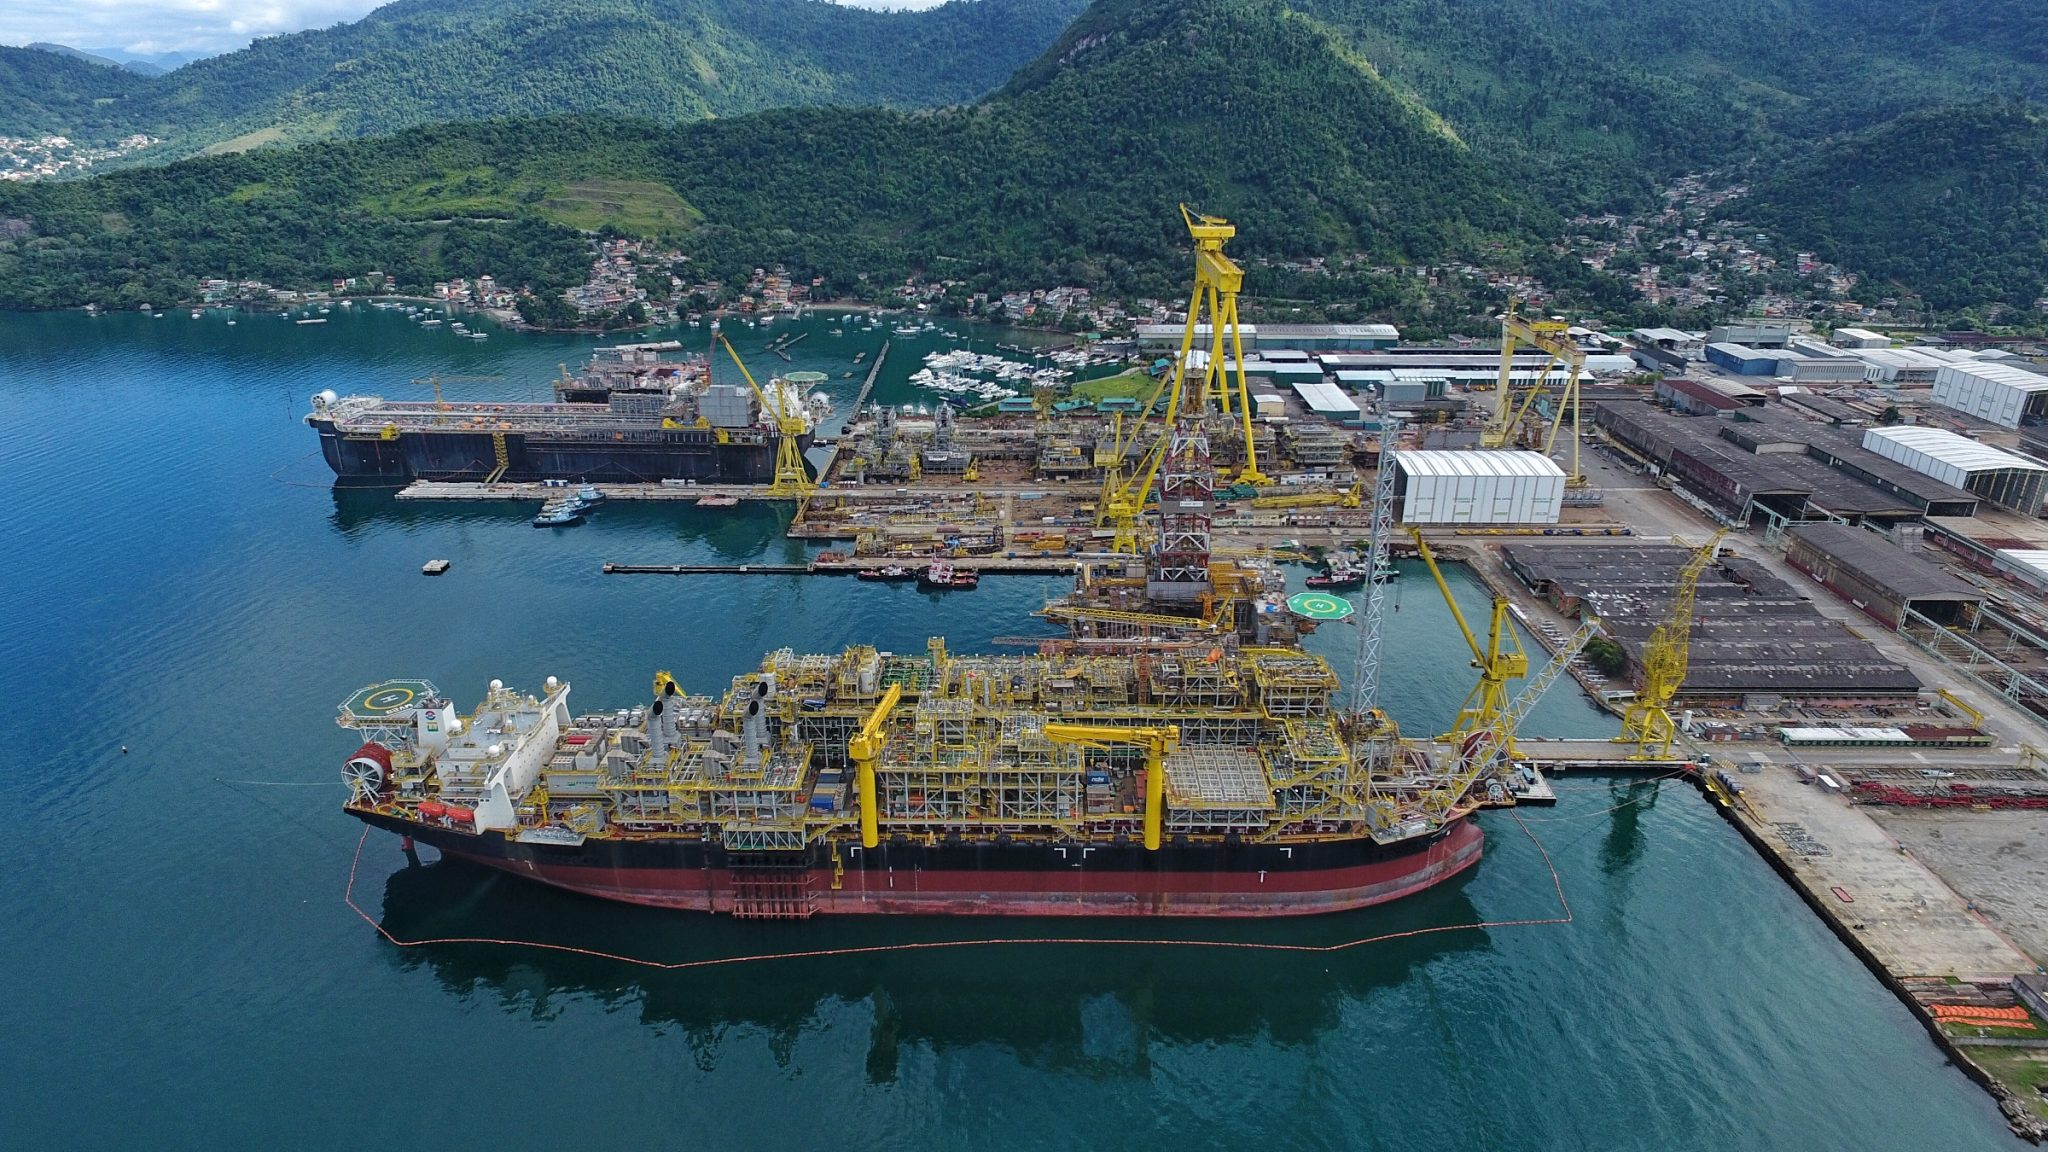 Keppel Offshore & Marine operation. Photo via Keppel O&M.